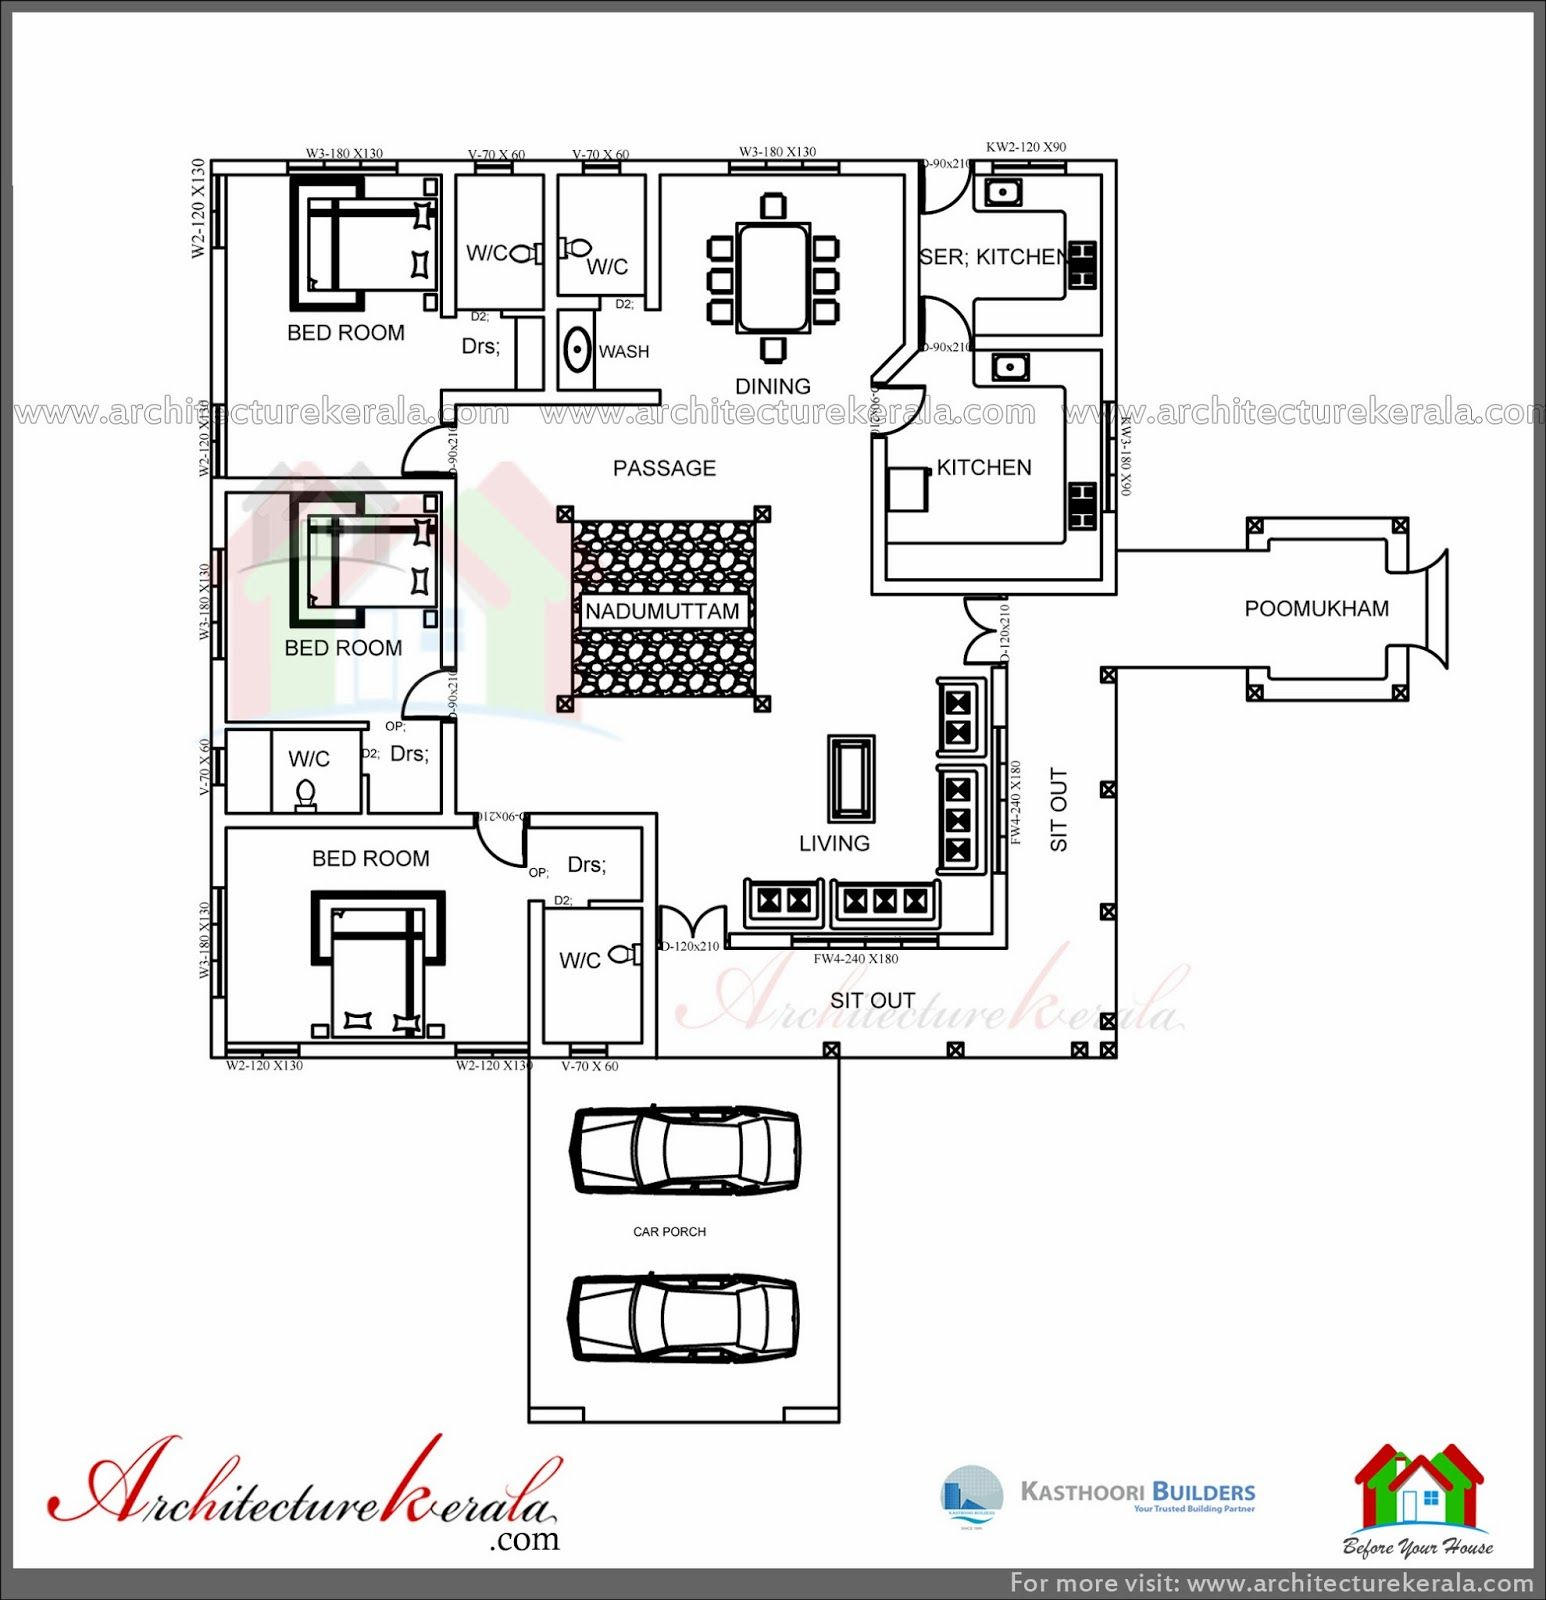 Architecture kerala traditional house plan with for Kerala traditional home plans